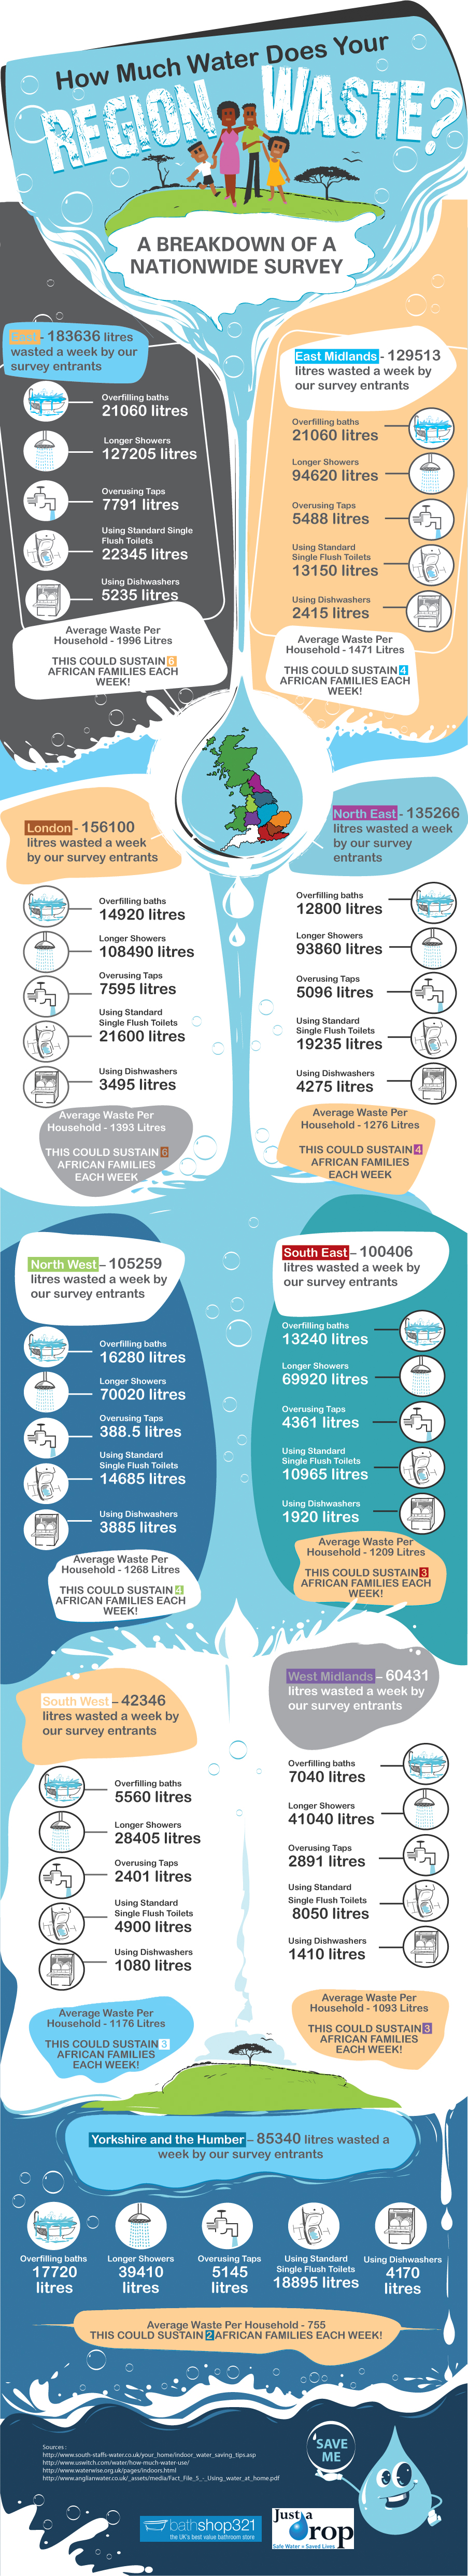 How Much Water Does Your Region Waste?